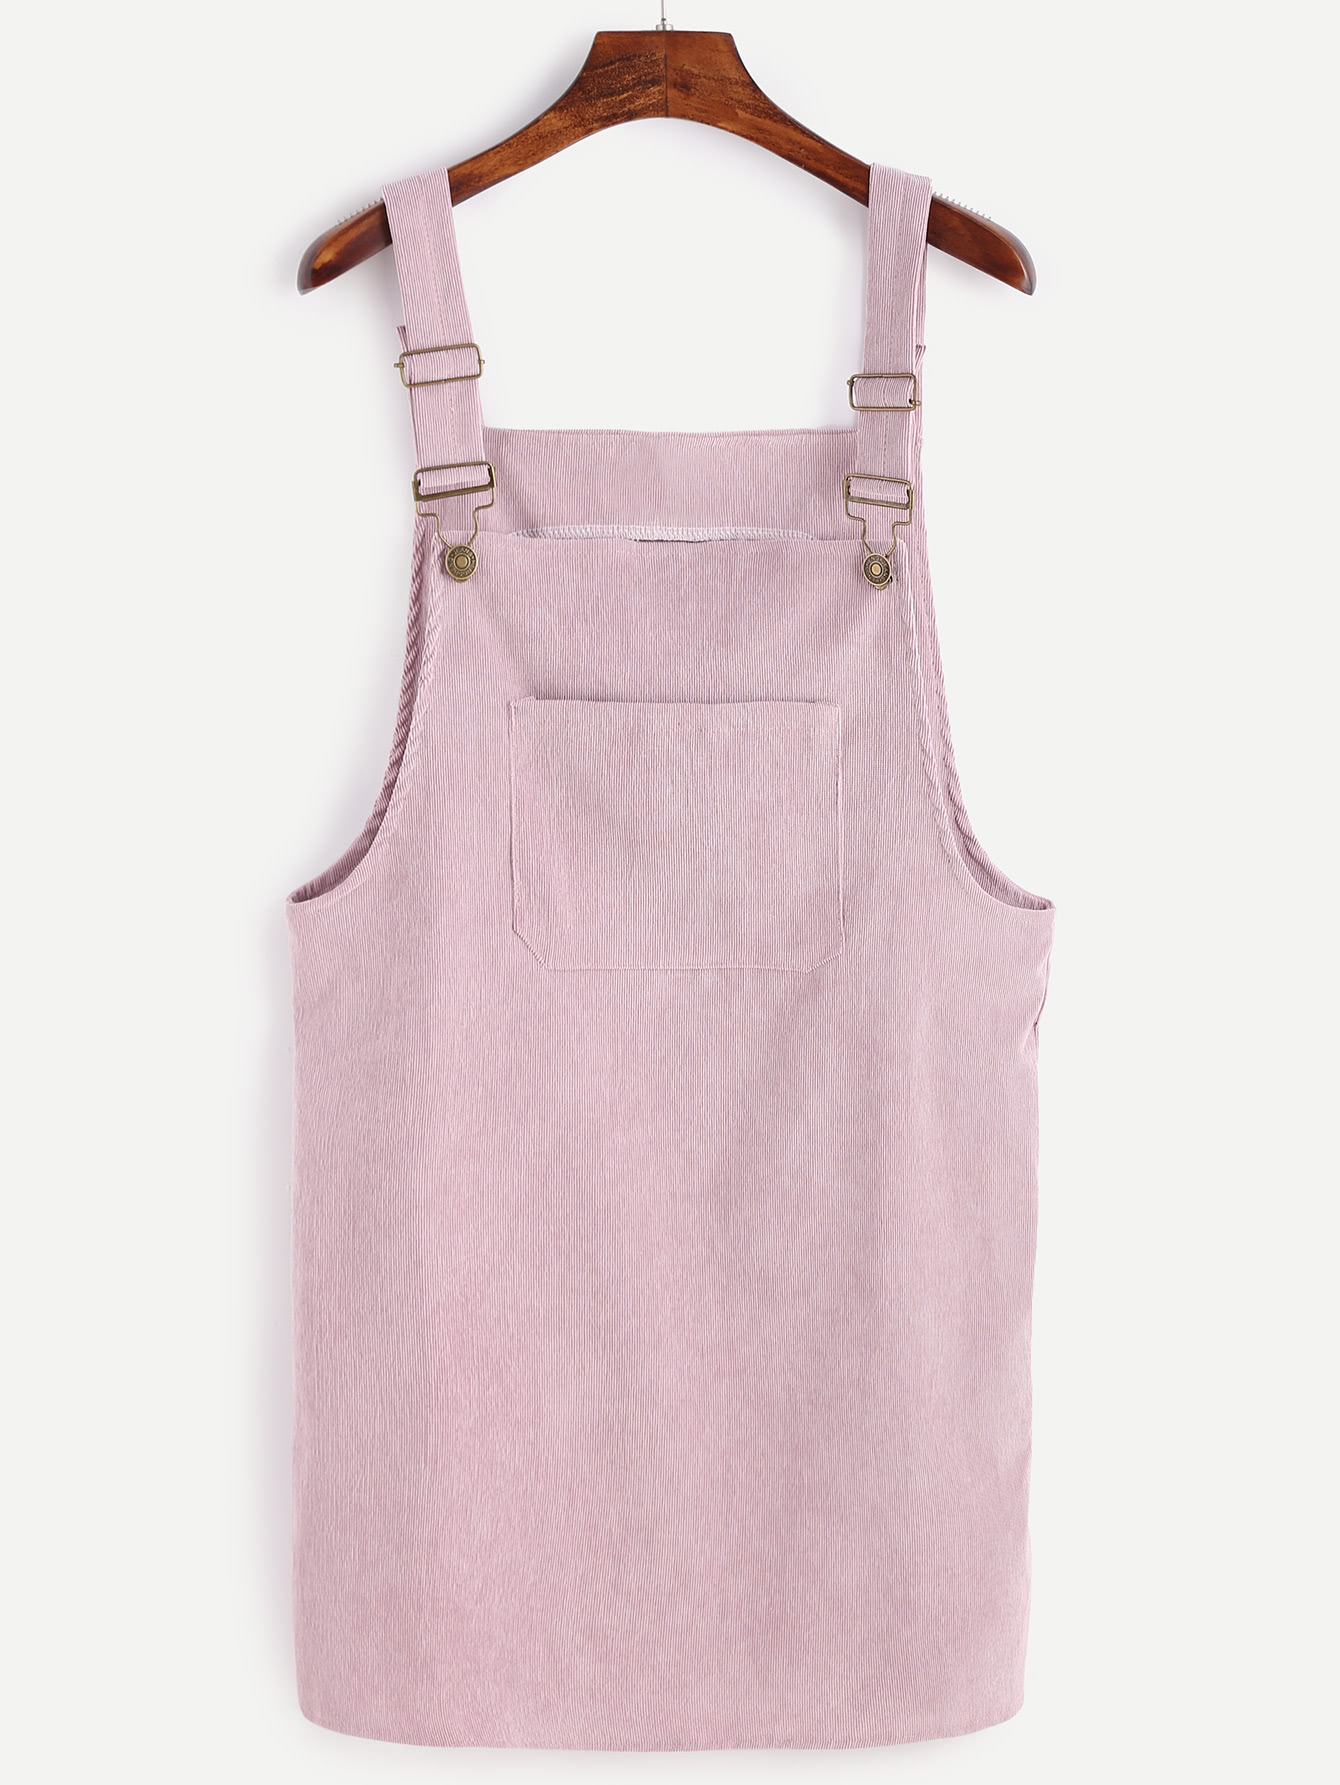 Pink Corduroy Overall Dress With Pocket